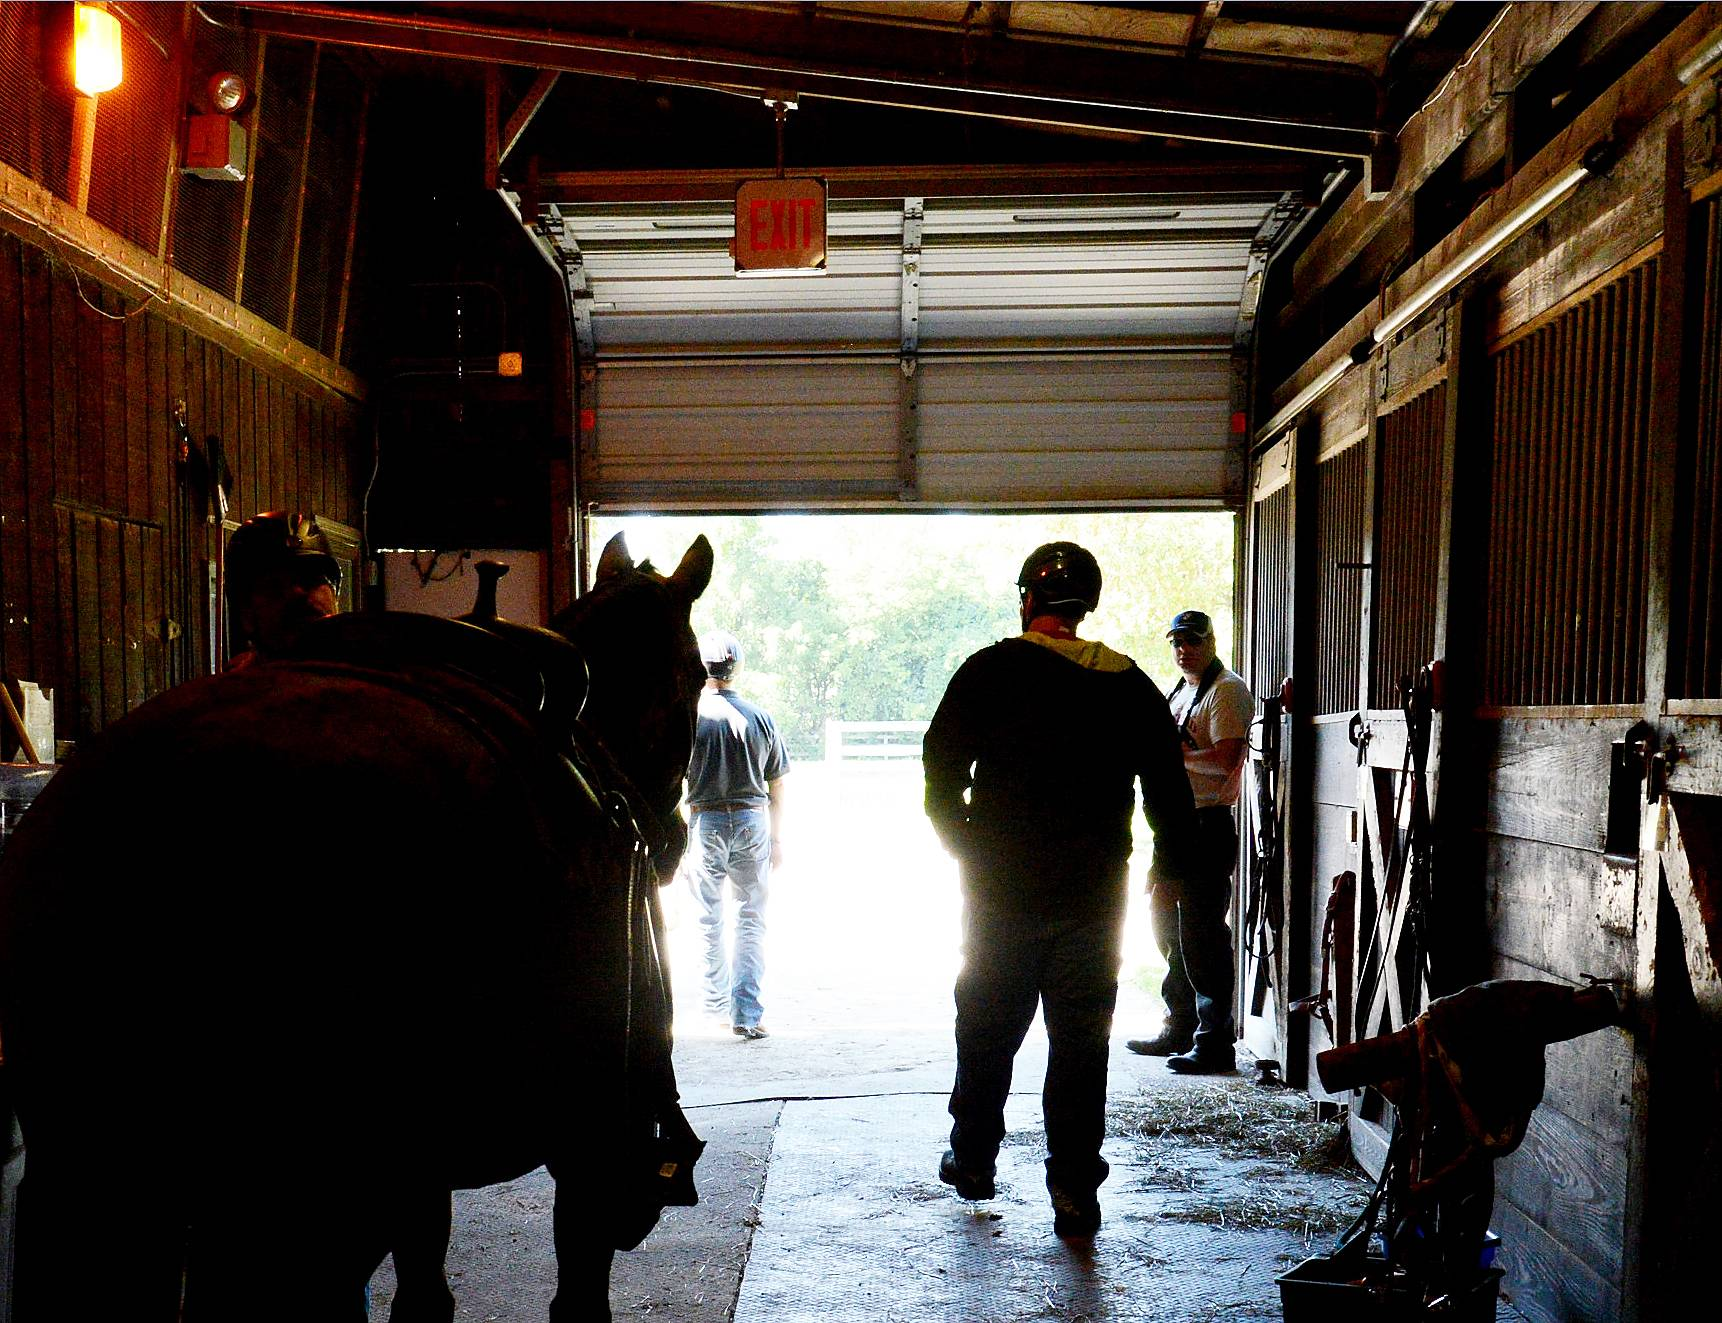 Riders prepare to set out on a trail ride Monday, as about 45 military veterans took part in a equine therapy event at the Barrington Hills Riding Center in Barrington Hills.